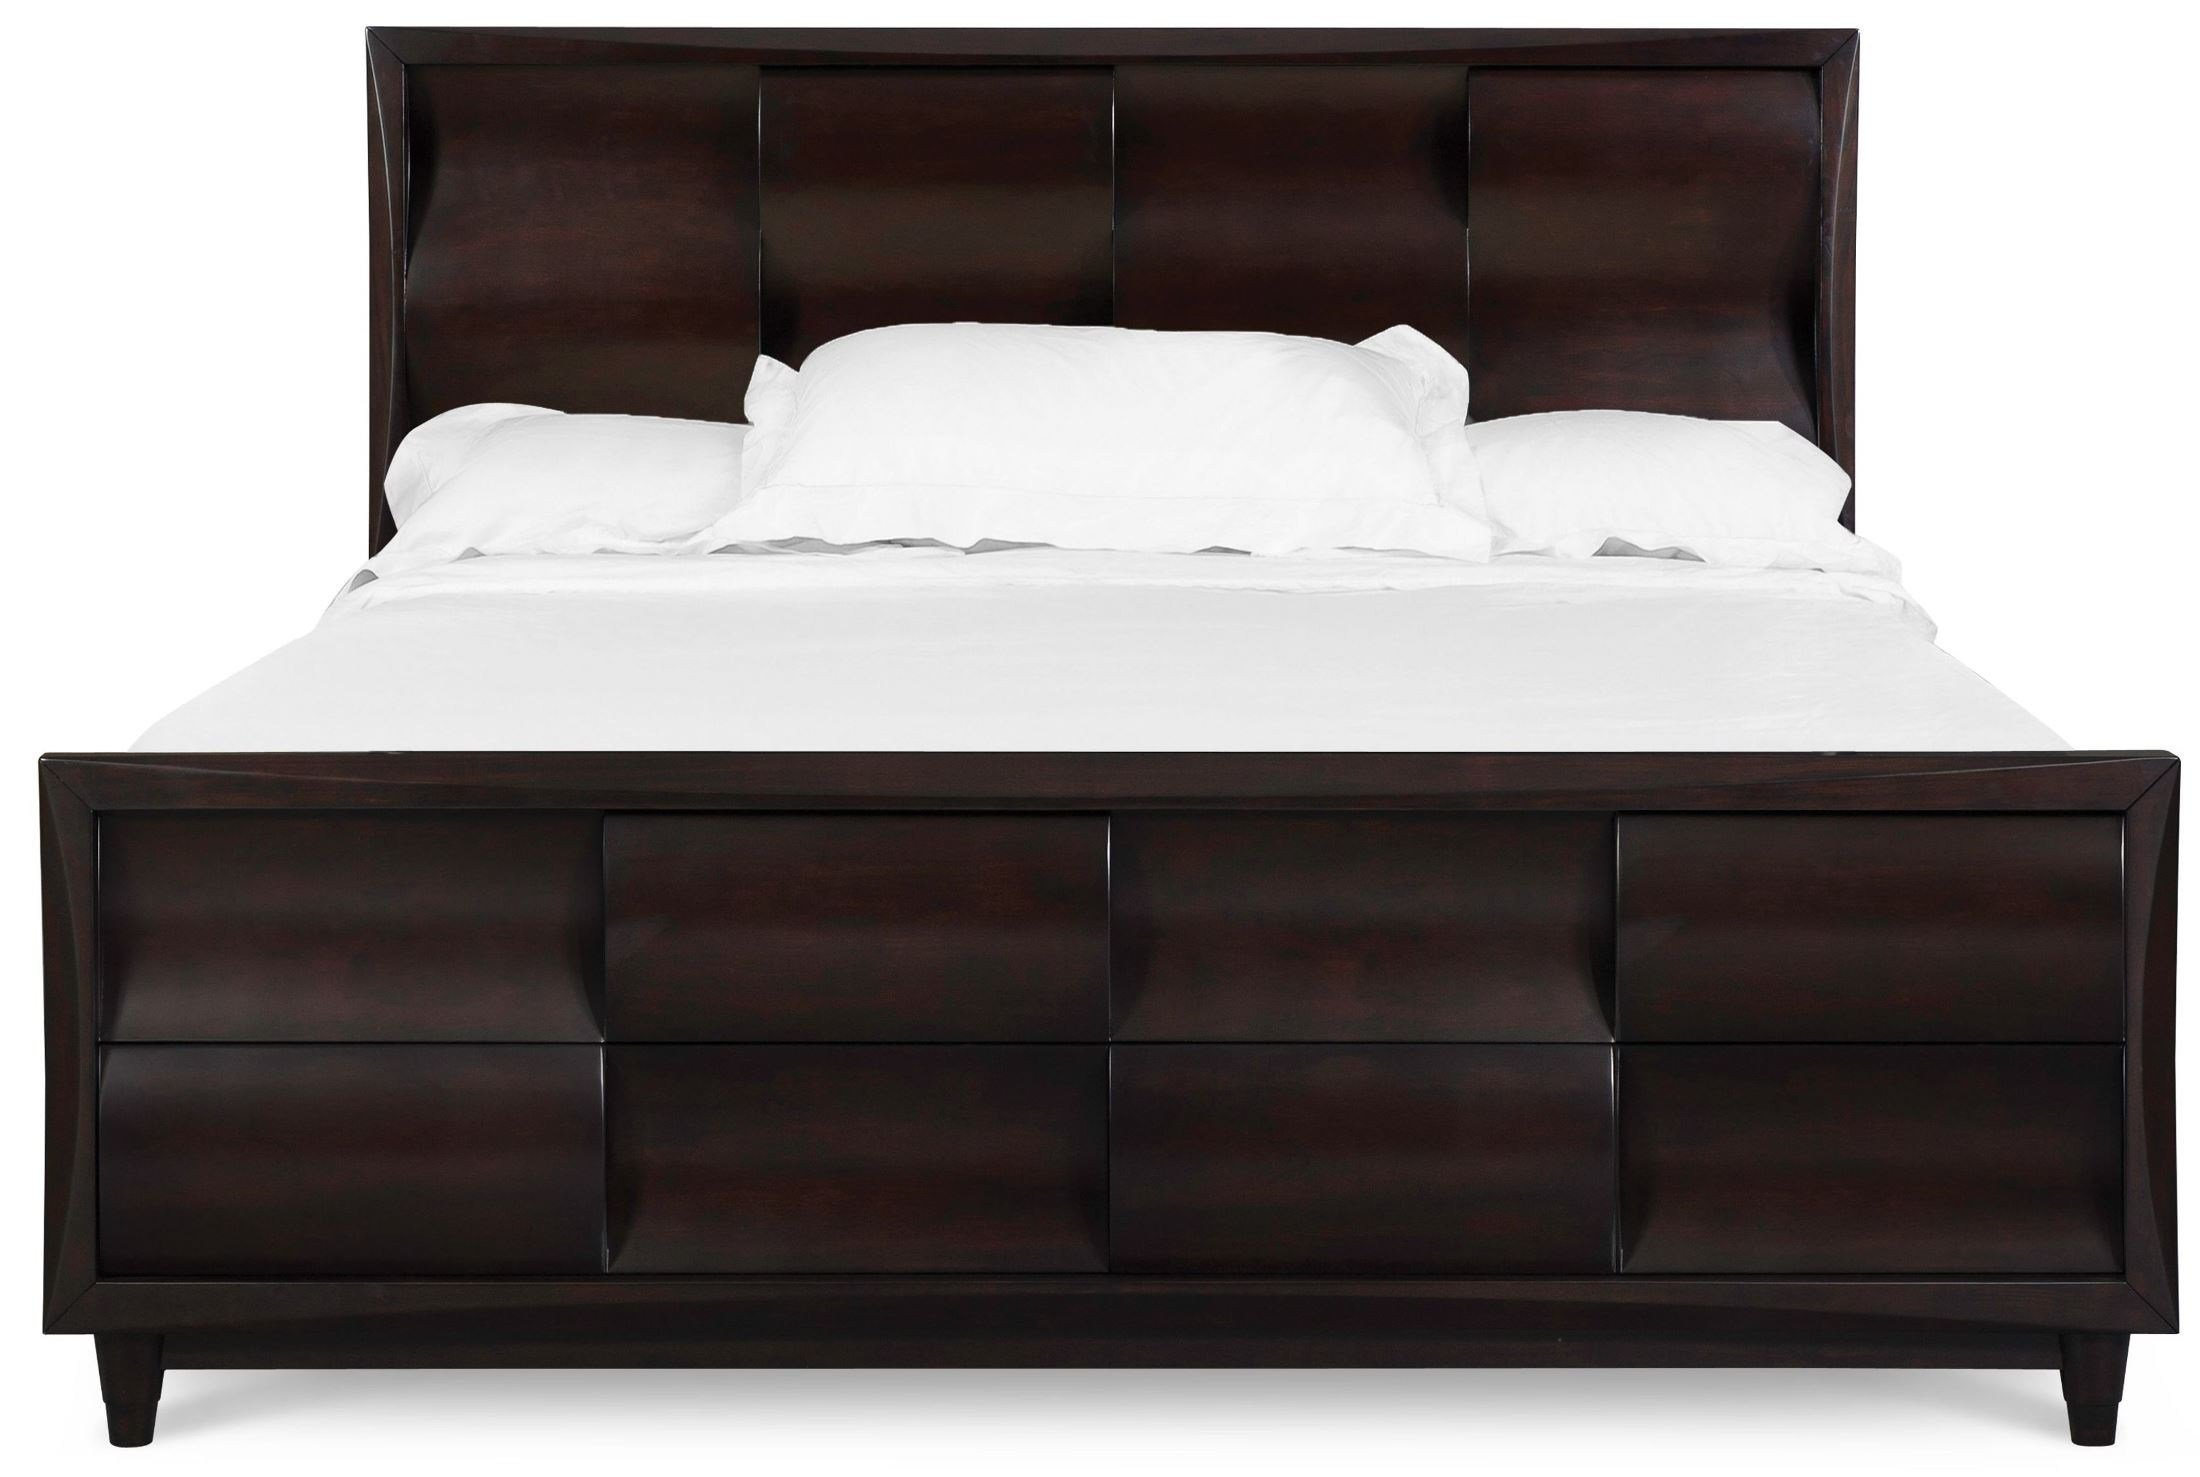 Best Fuqua King Panel Bed From Magnussen Home B1794 64H 64F With Pictures